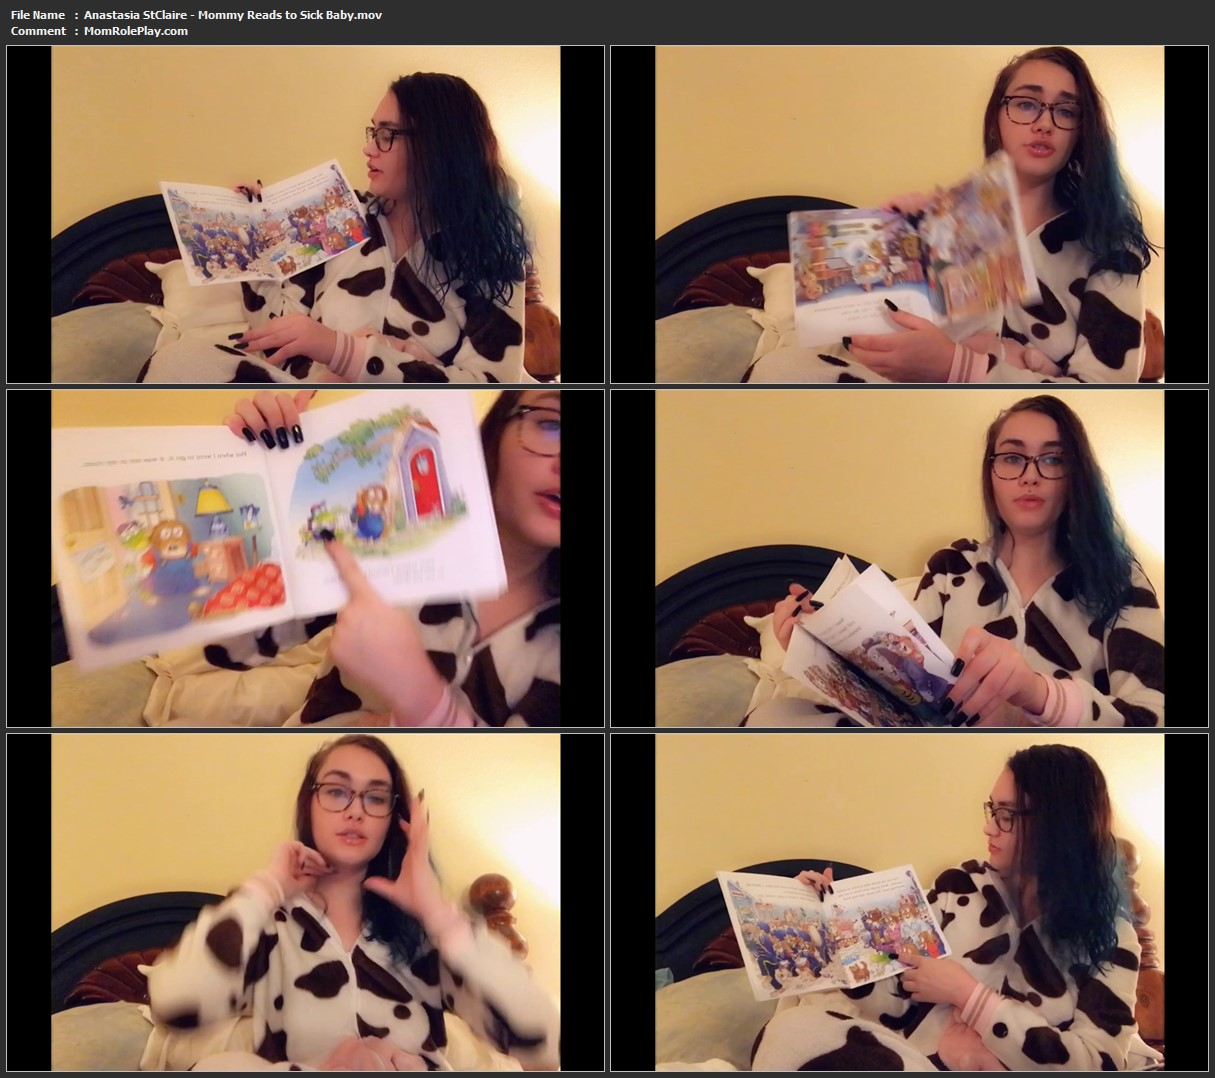 Anastasia StClaire - Mommy Reads to Sick Baby